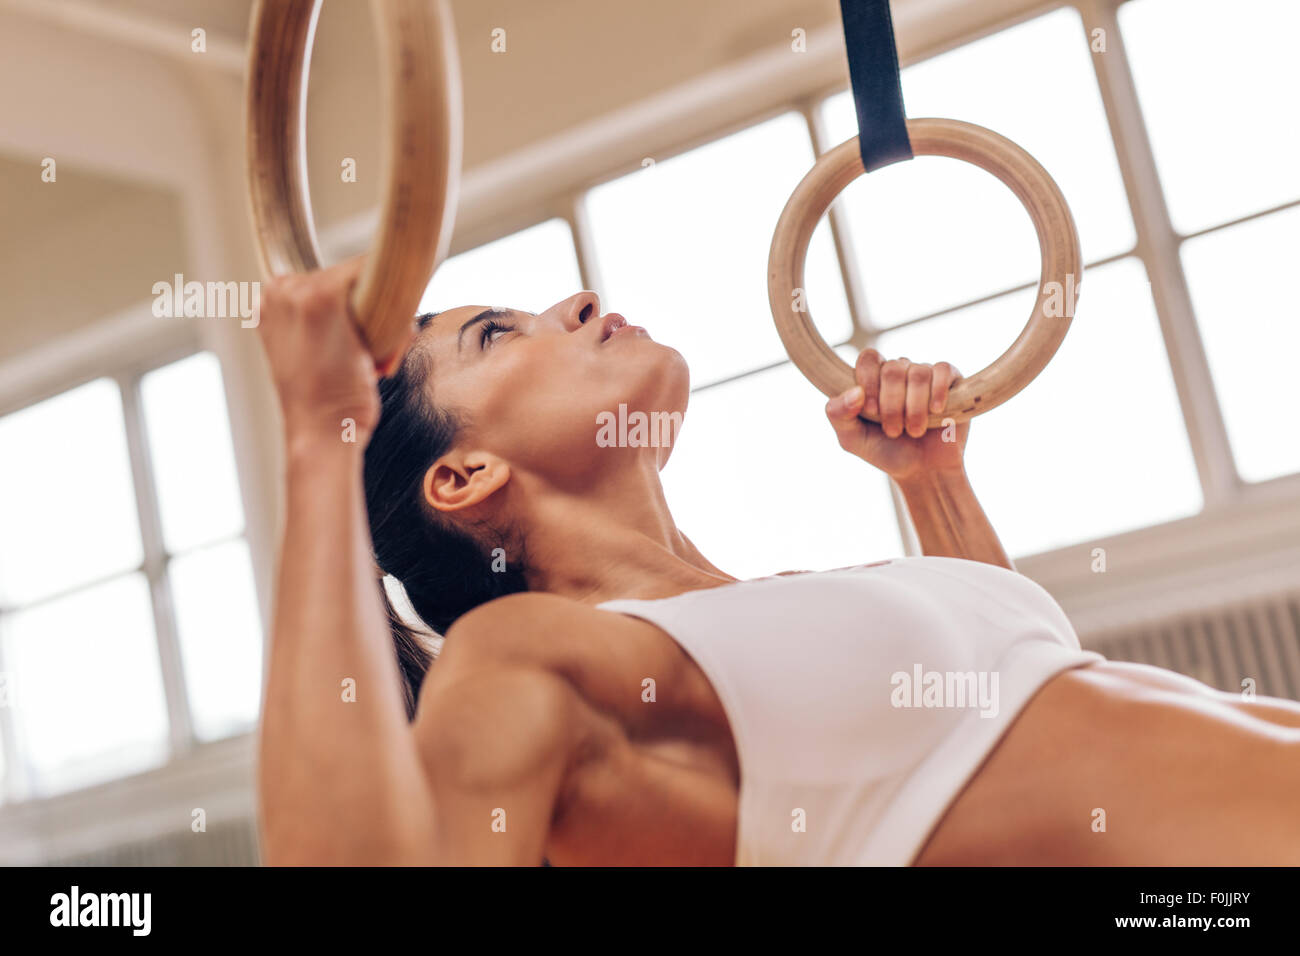 Gymnastic Rings For Pull Ups